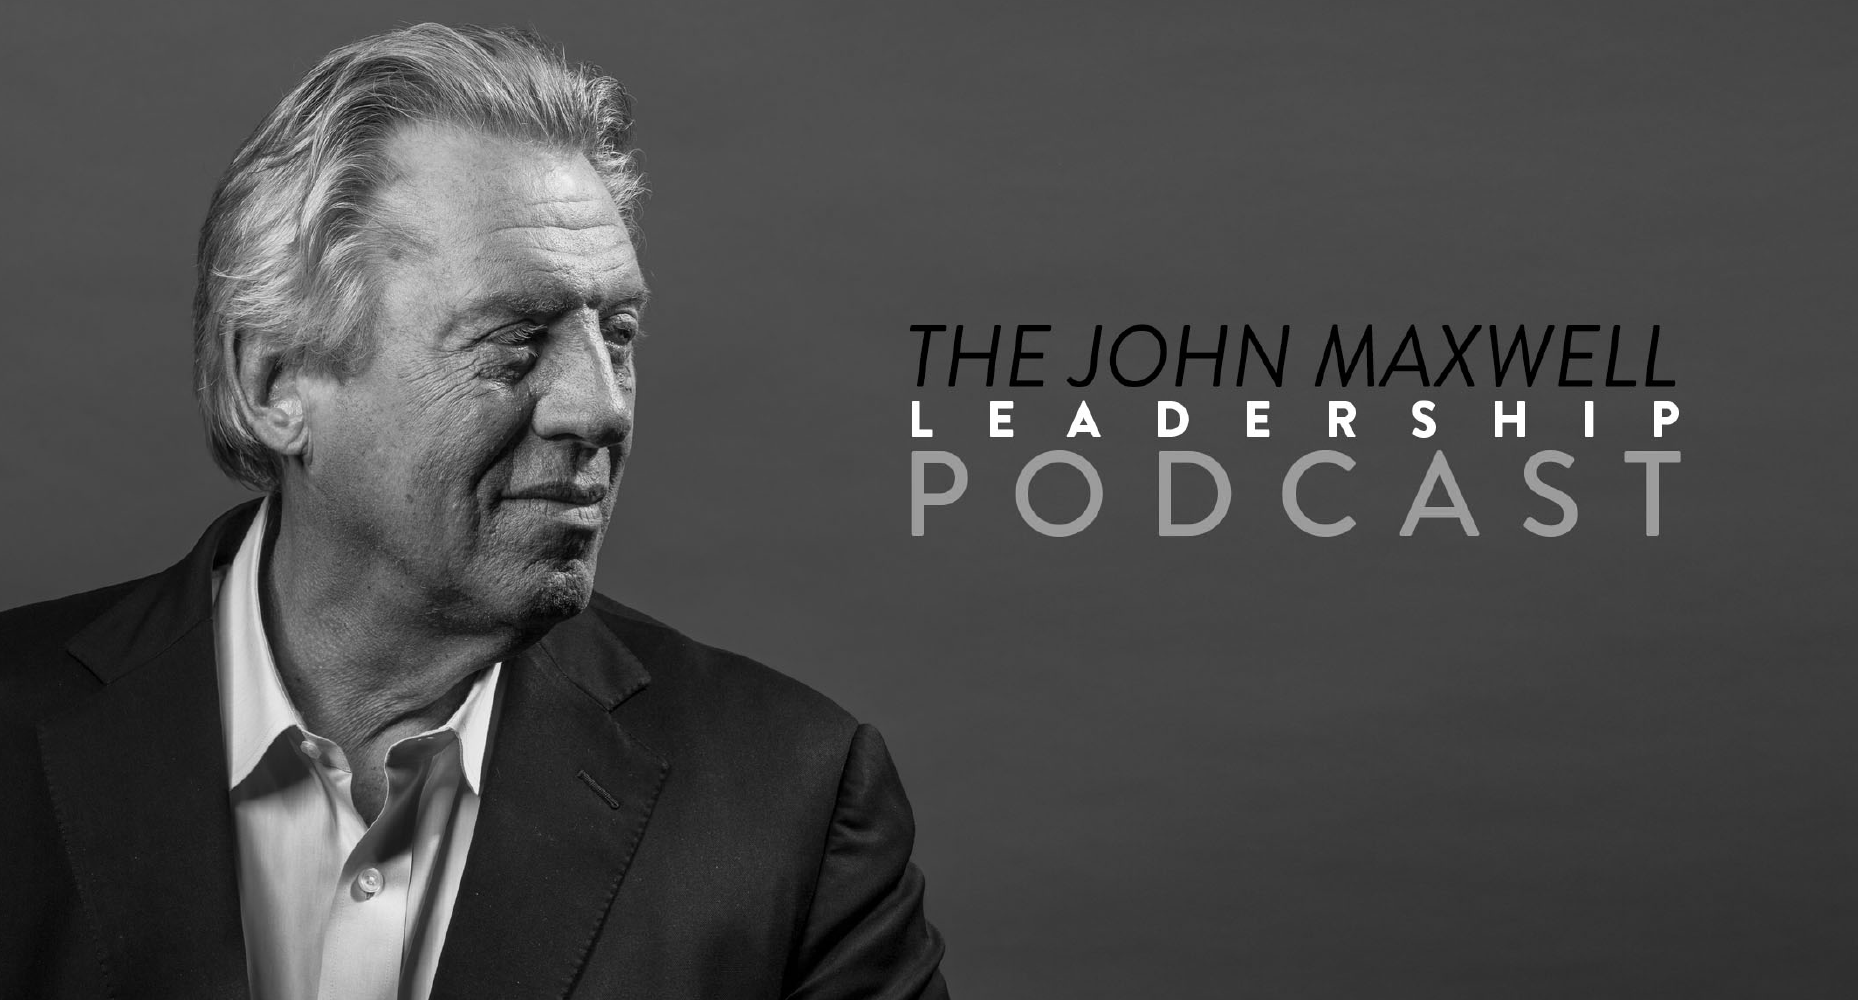 Podcast Image_JohnMaxwellWebsite_Front Page Link_BlackAndWhite